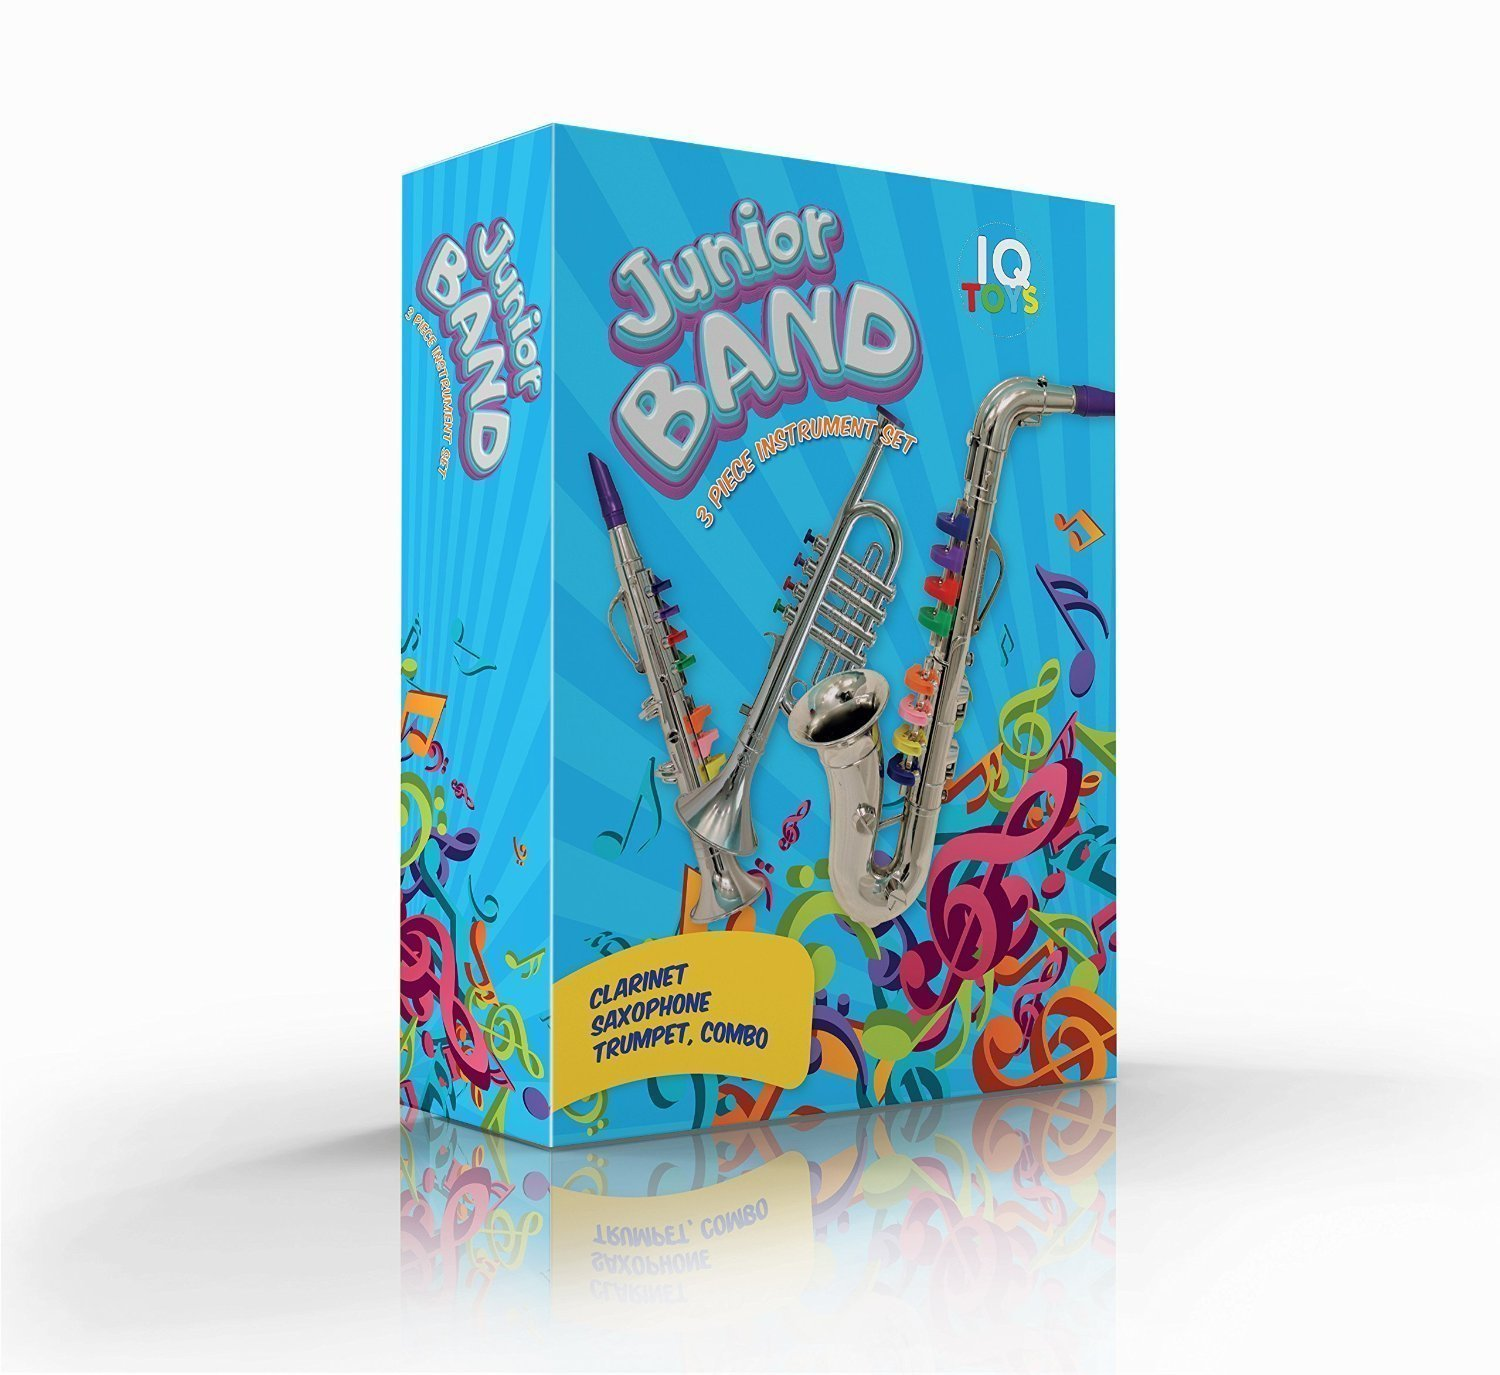 IQ Toys Set of 3 Toy Music Instruments 1. Clarinet 2. Saxophone 3. Trumpet, Combo by IQ Toys (Image #2)